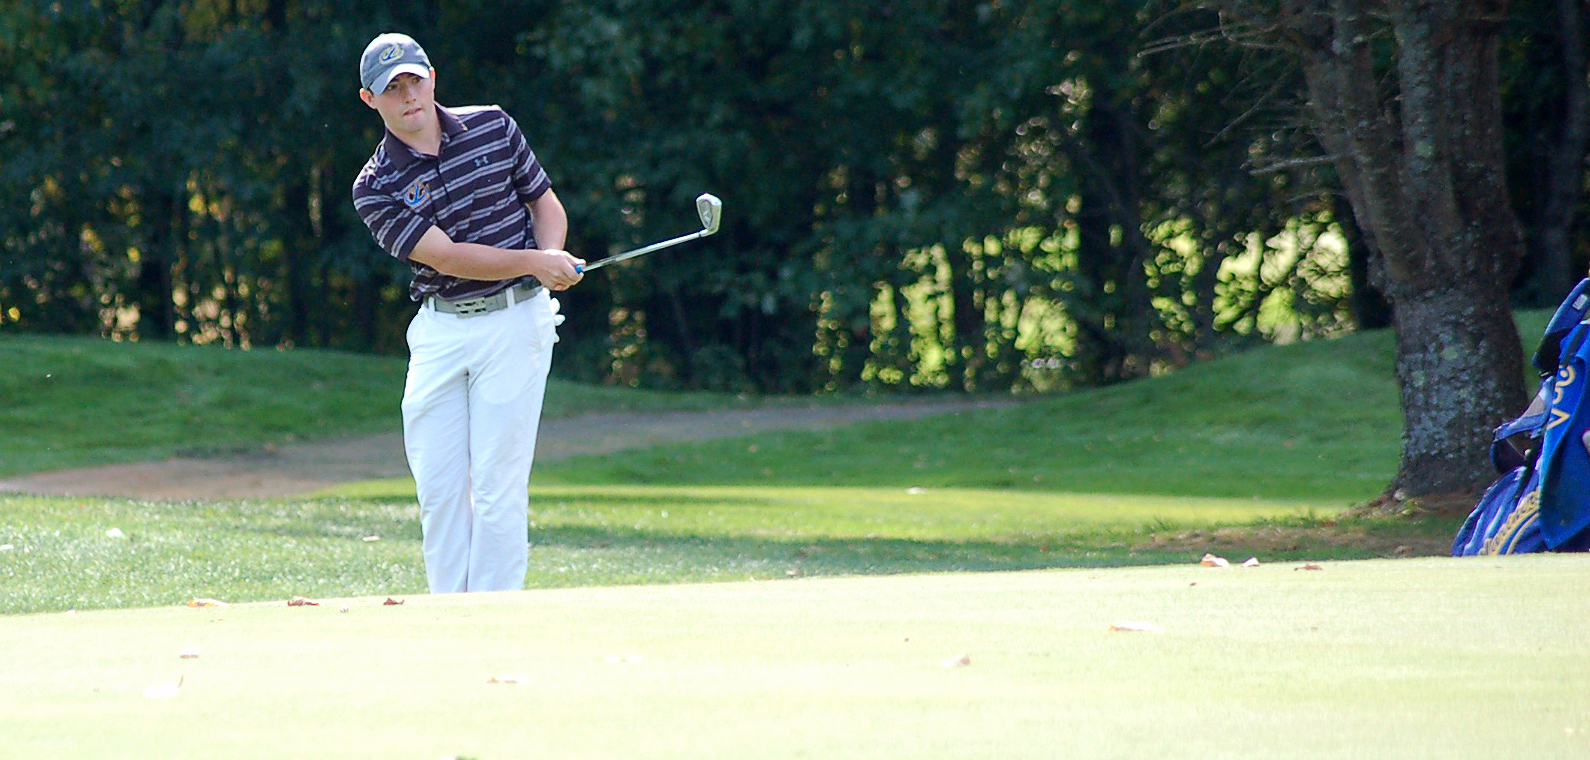 Mariners Place Fifth at John Queenan Invitational